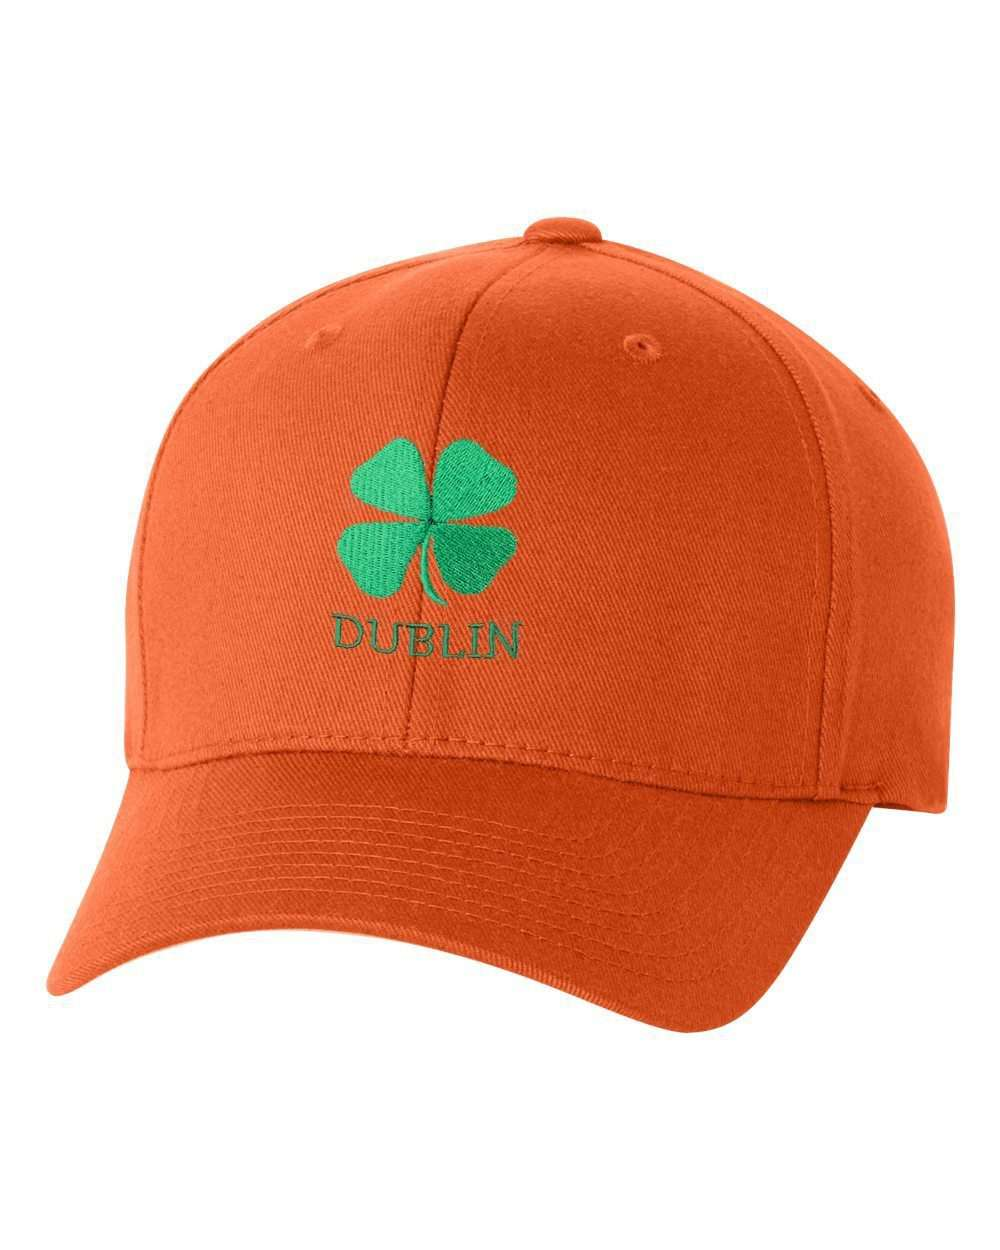 Hat - St Patrick's Day Fitted Hat, Four Leaf Clover Flex Fit Baseball Hat - Clover & Dublin